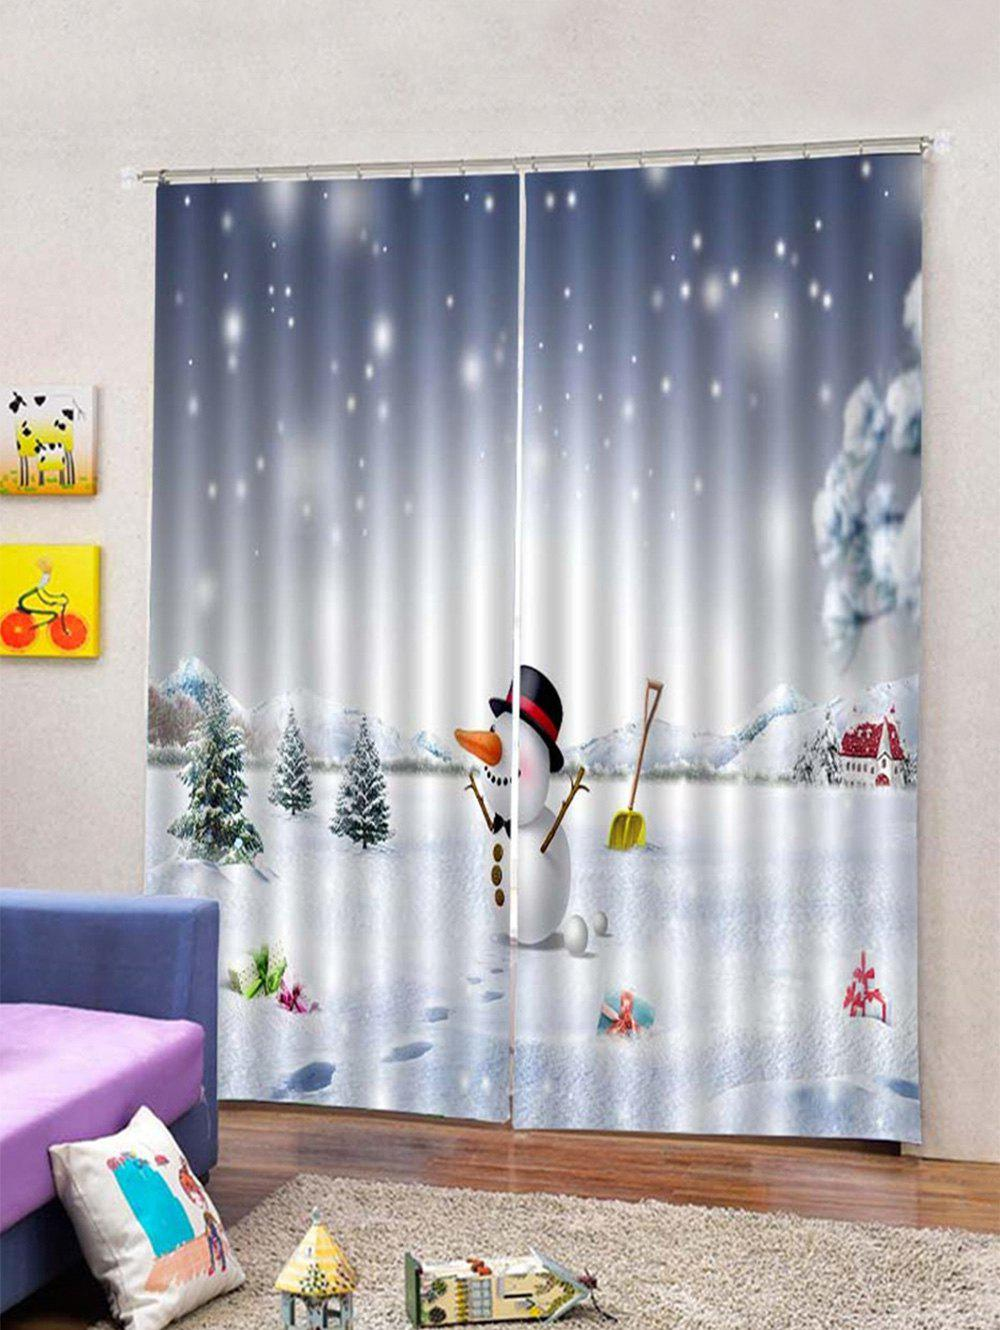 Chic 2 Panels Christmas Snowman Snowfield Print Window Curtains